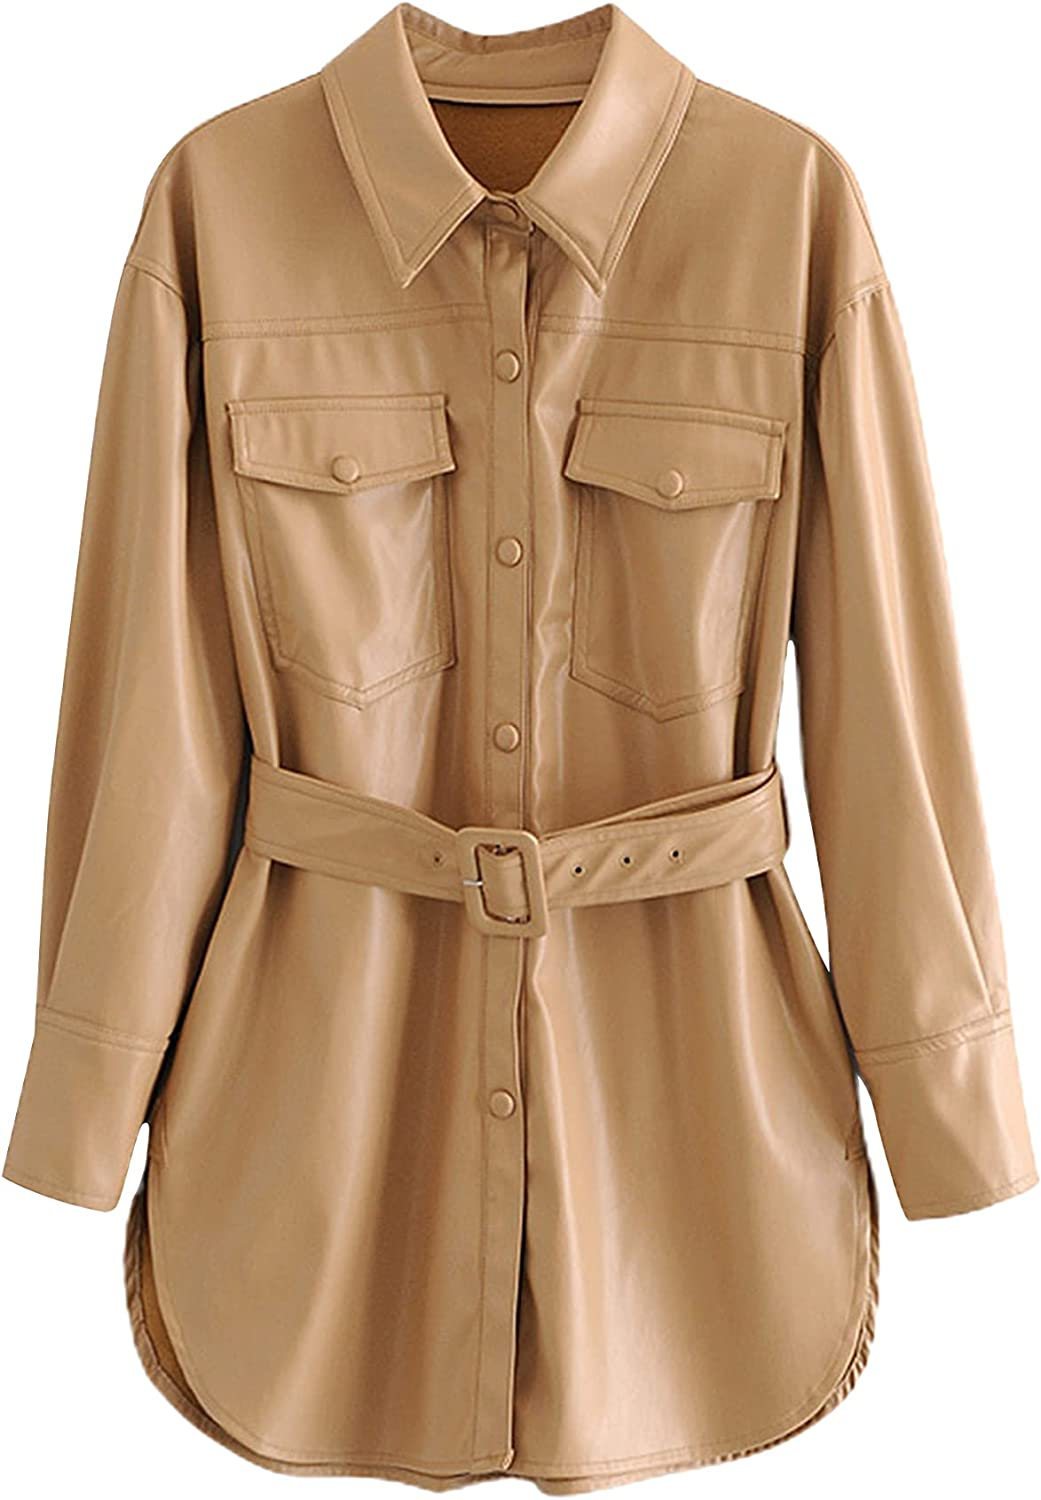 UANEO Womens Casual Faux Leather Shacket Long Sleeve Button Down Belted Shirt Jacket (Khaki-XS)